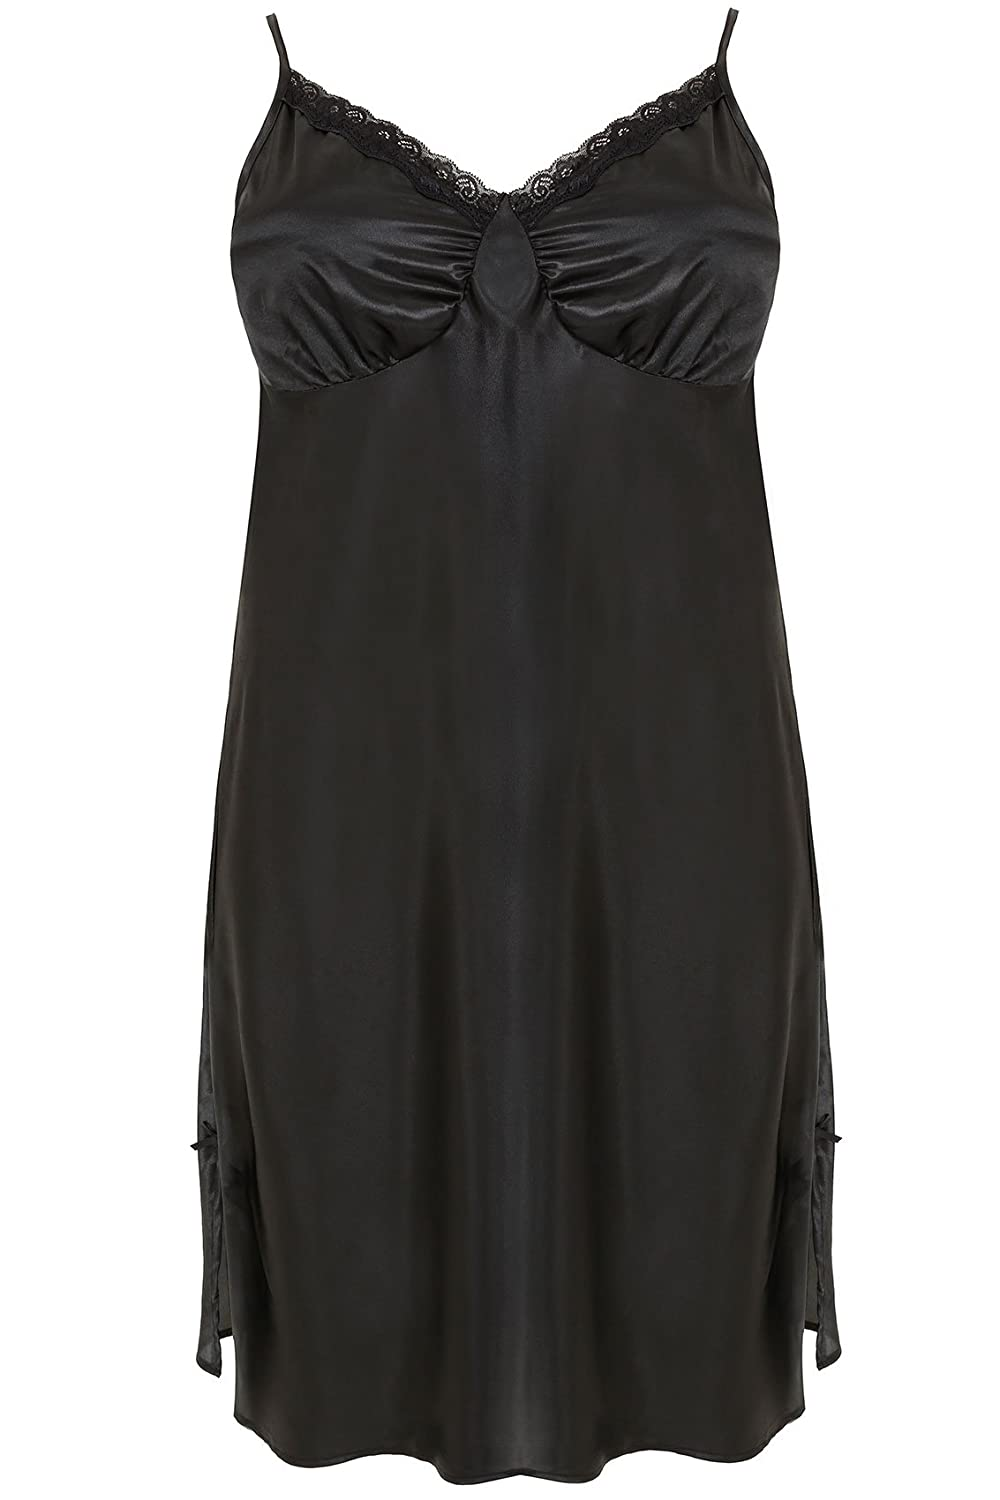 Yoursclothing Plus Size Womens Satin Midi Chemise With Lace Trim